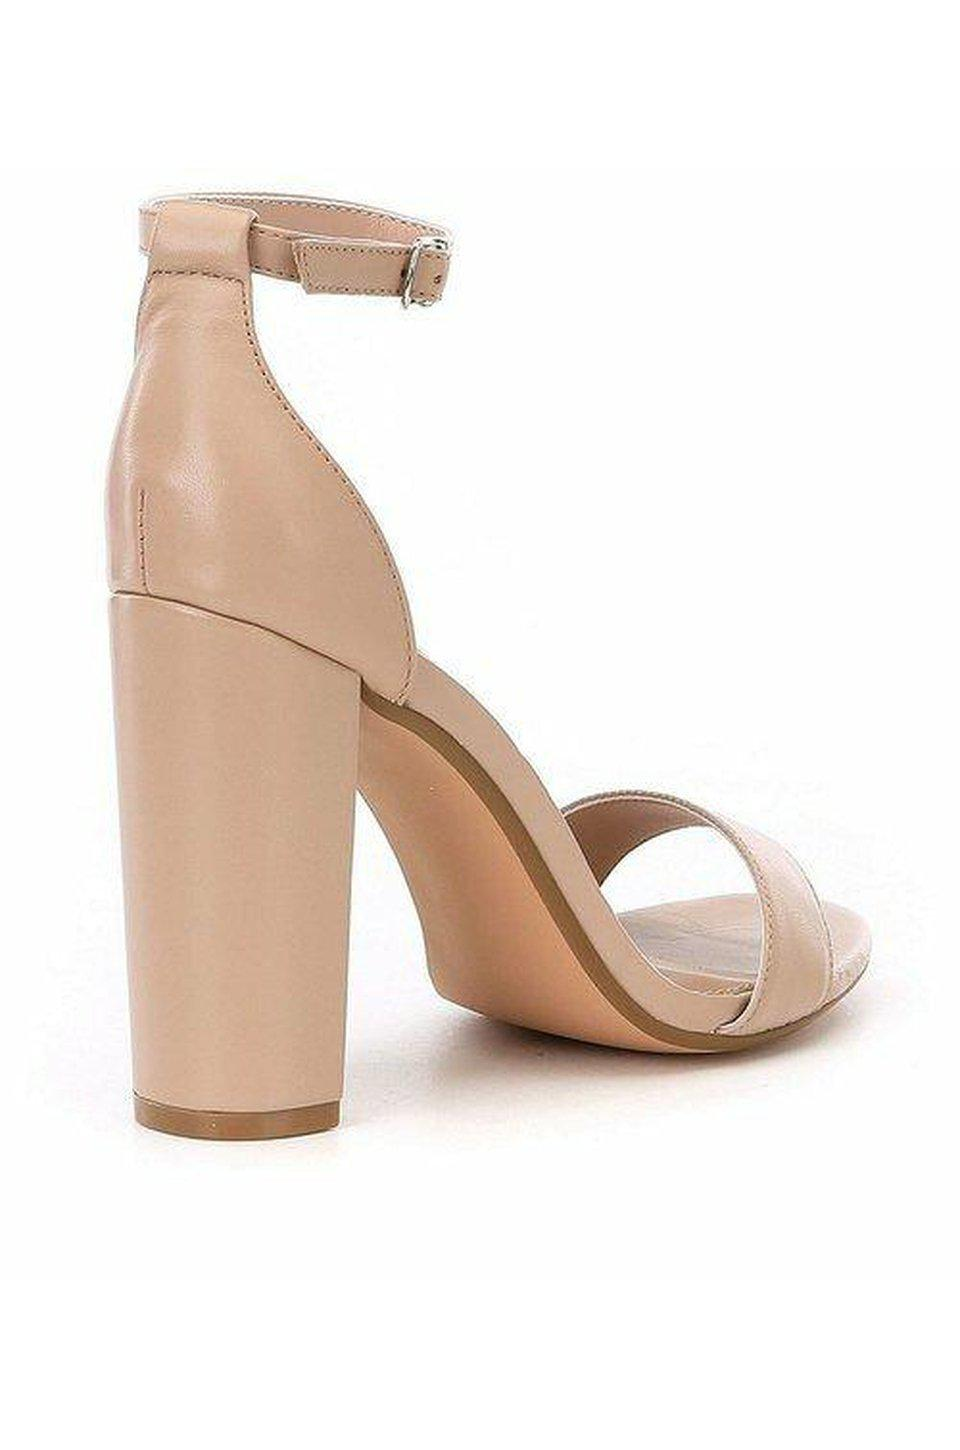 Steve Madden Carrson Heel In Blush Leather